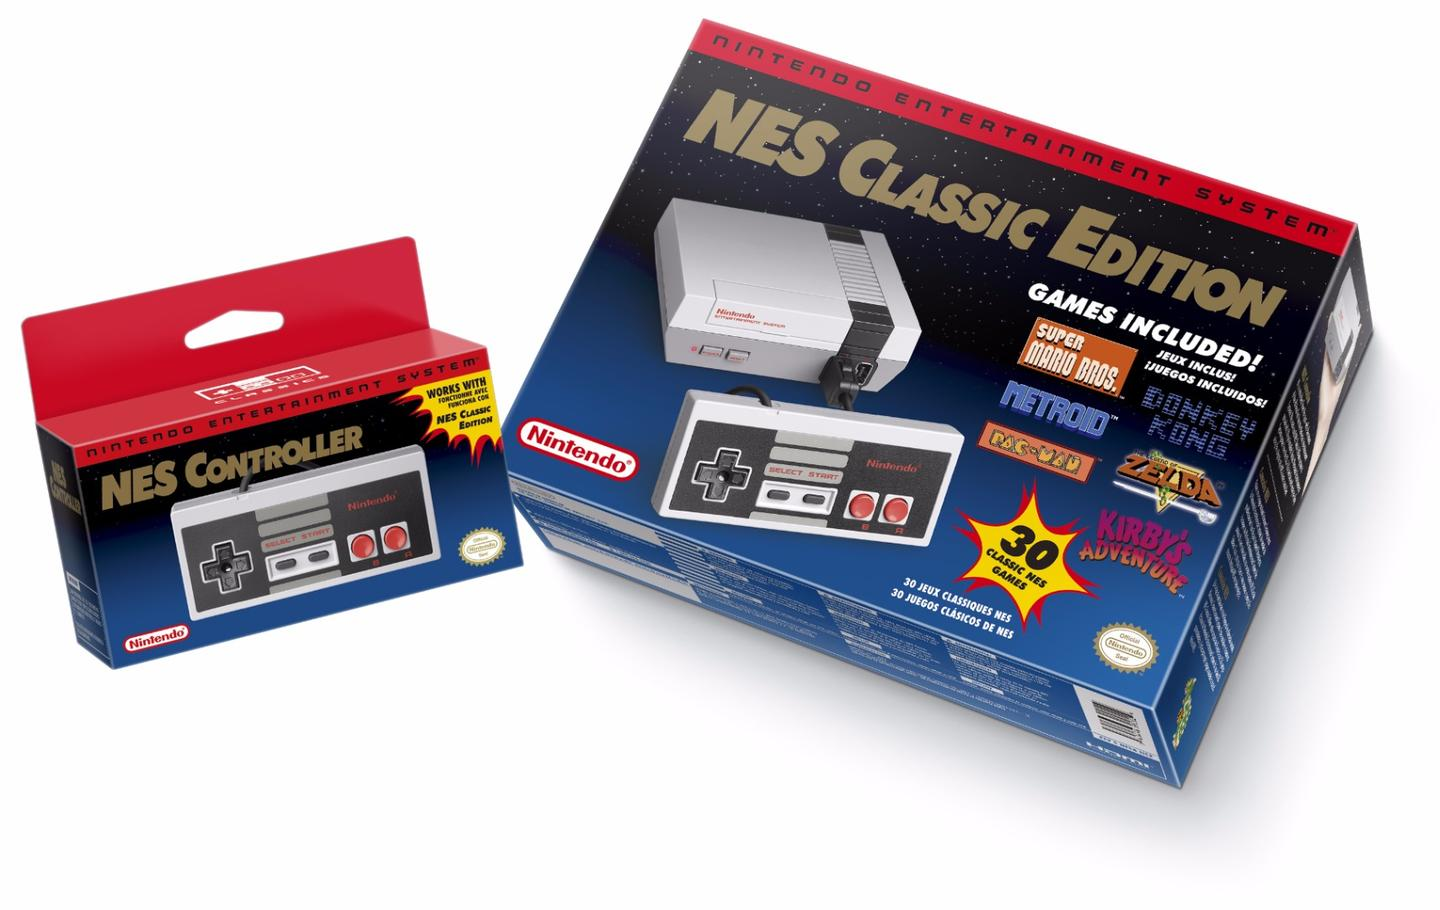 The Classic Mini comes with an HDMI cable via which to connect it to an HDTV, an AC adapter and one NES Classic Controller